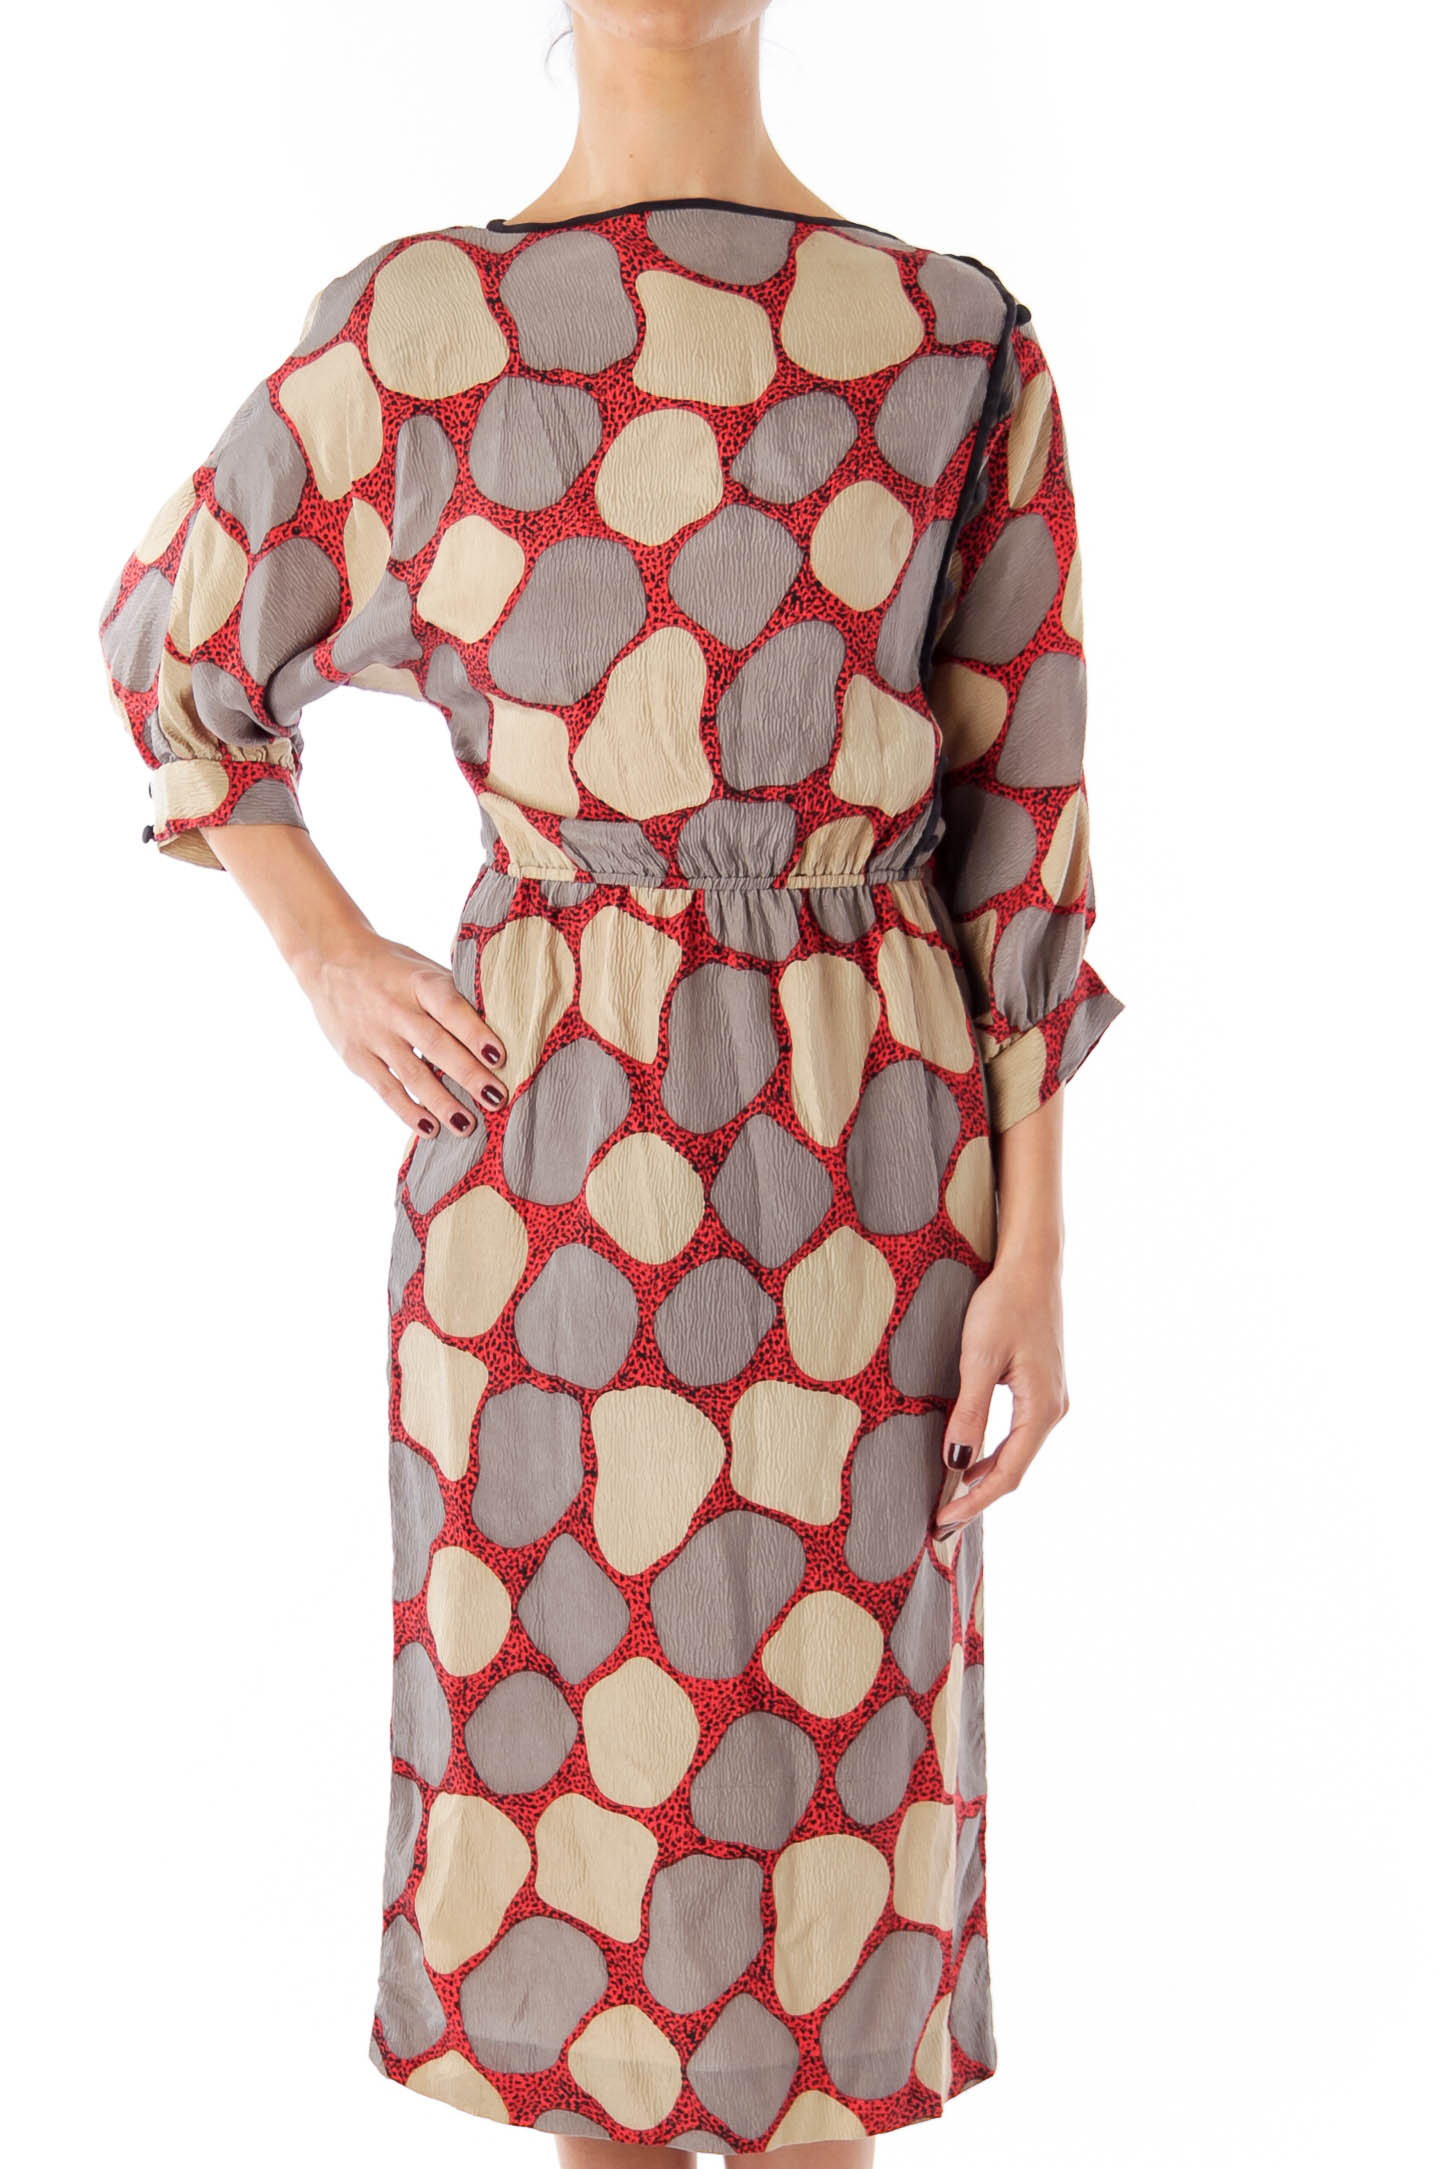 Gray and Red Circle Pattern Dress